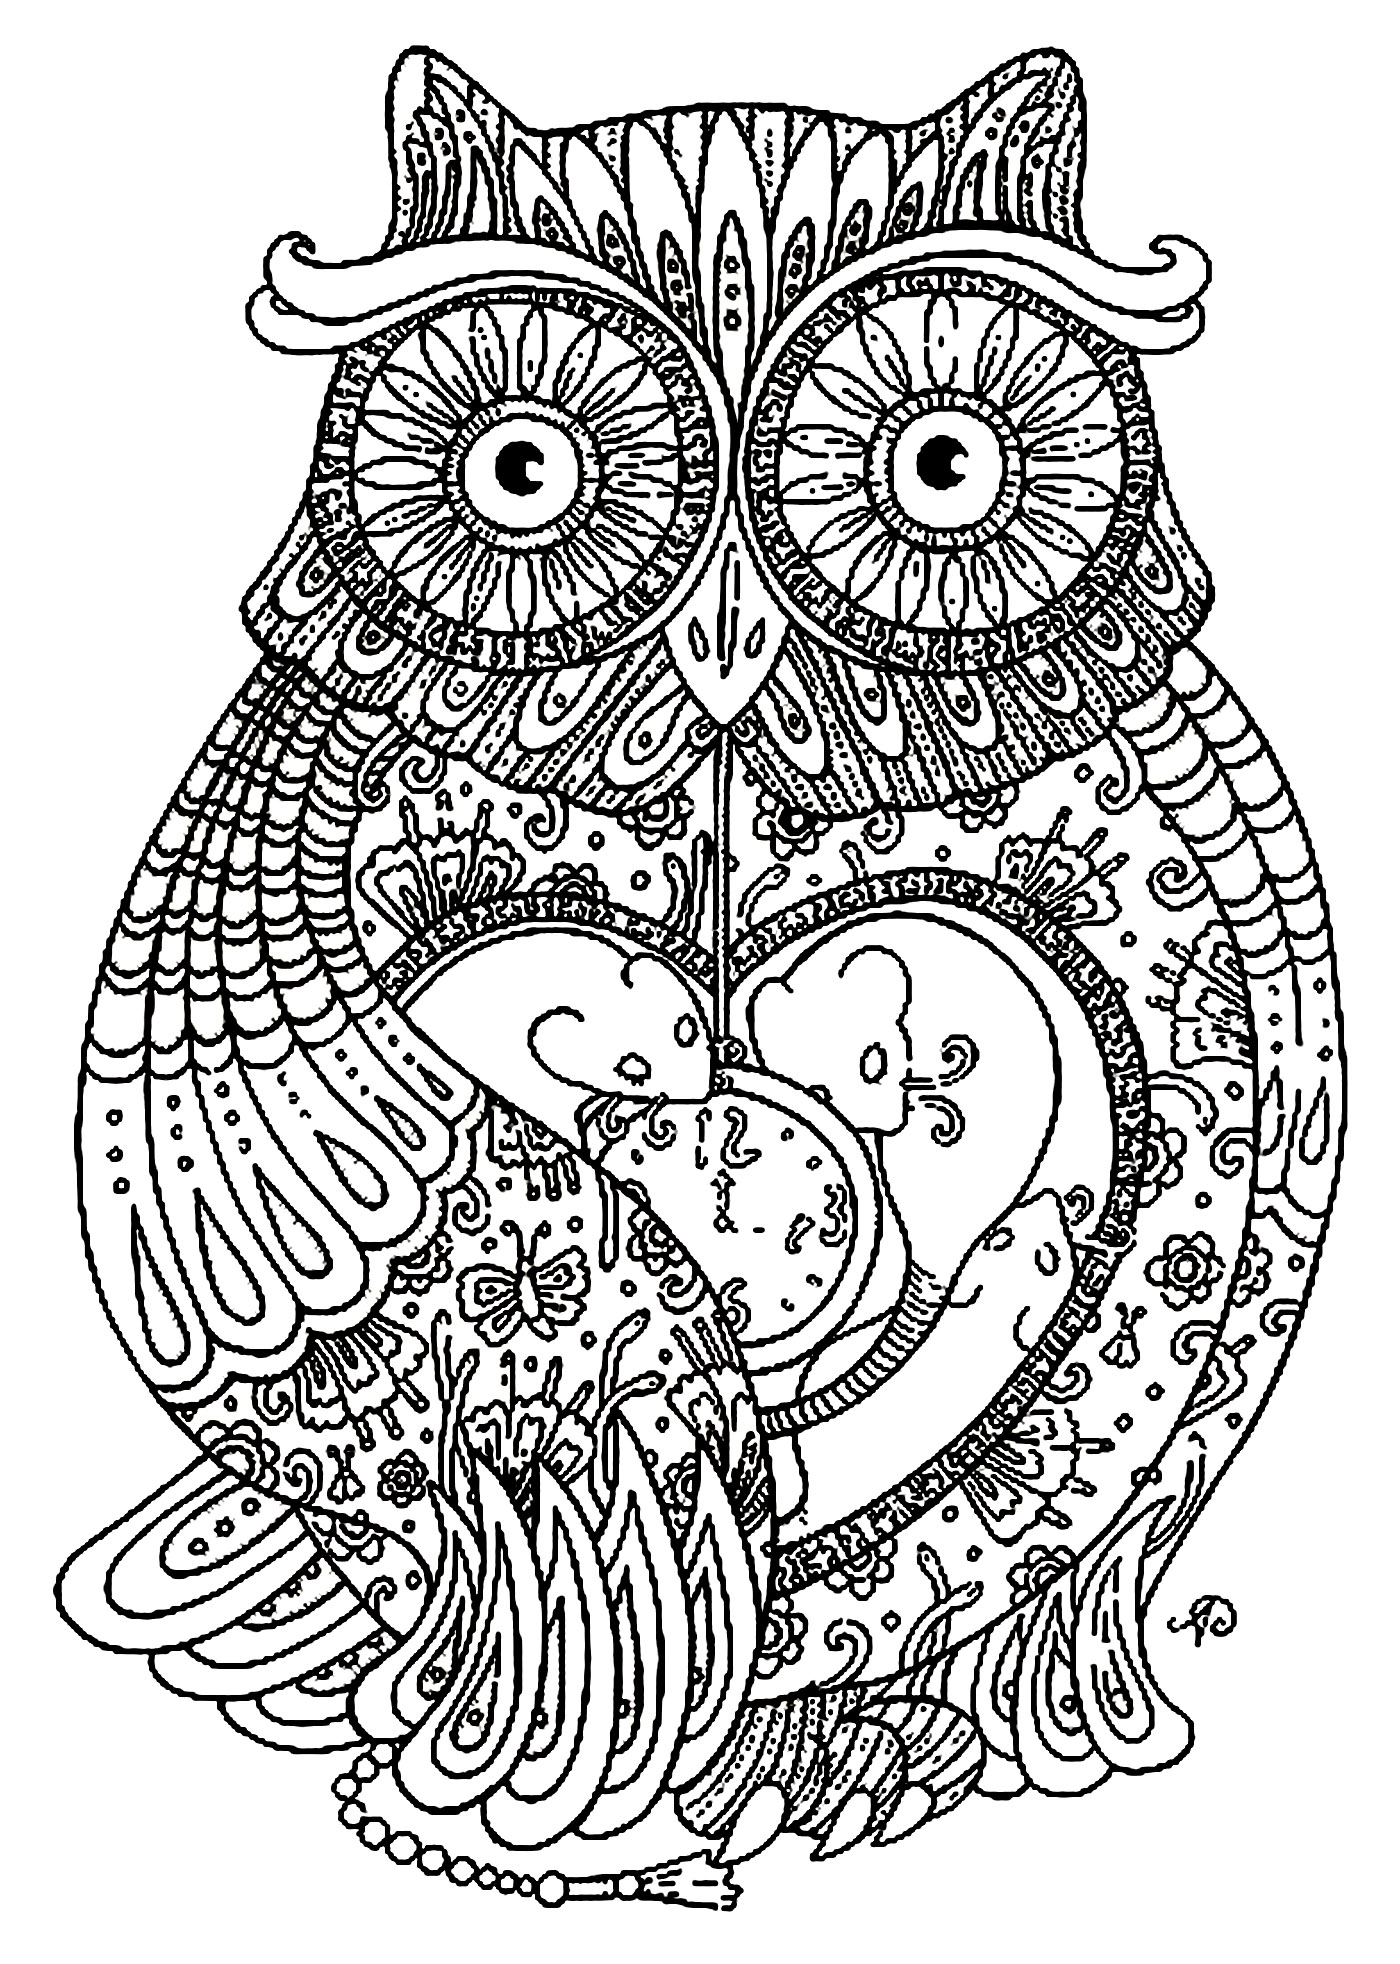 Pretty Owl full of details